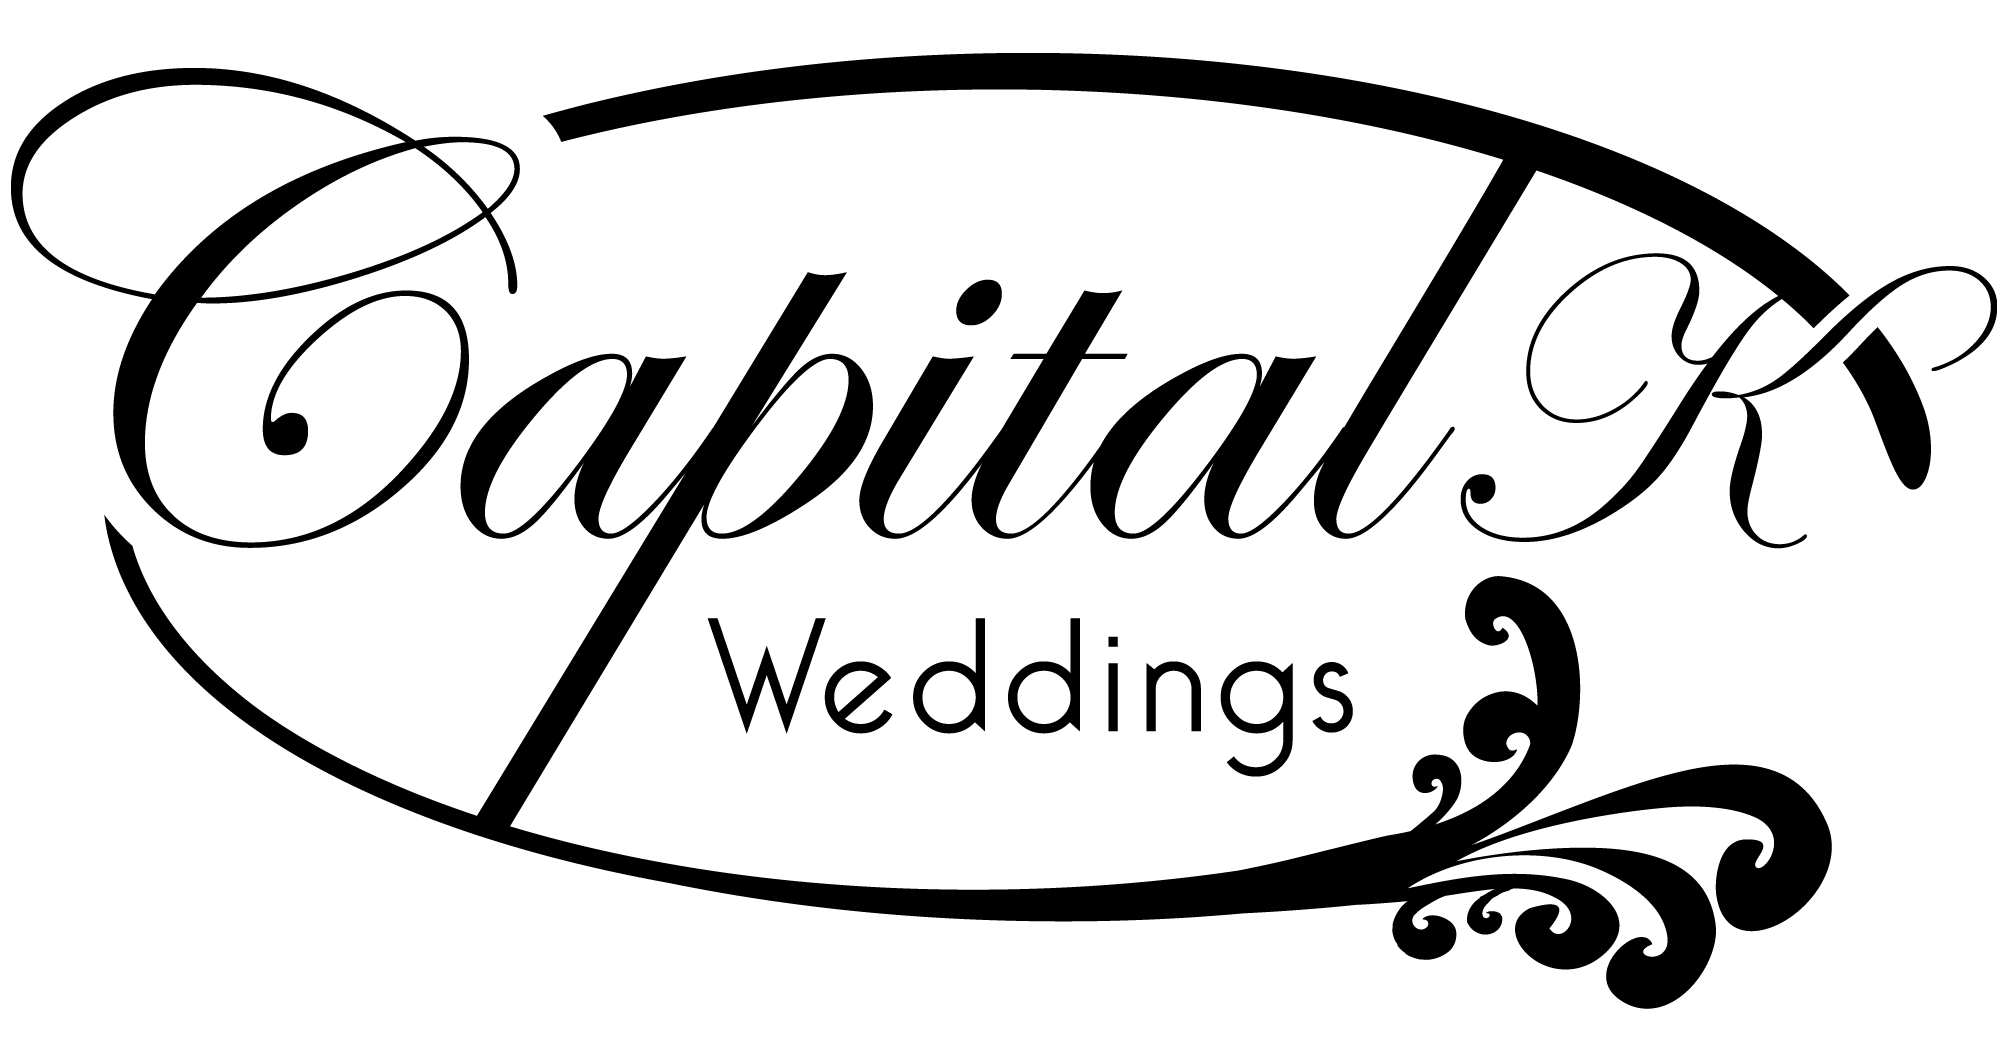 Capital K - Weddings